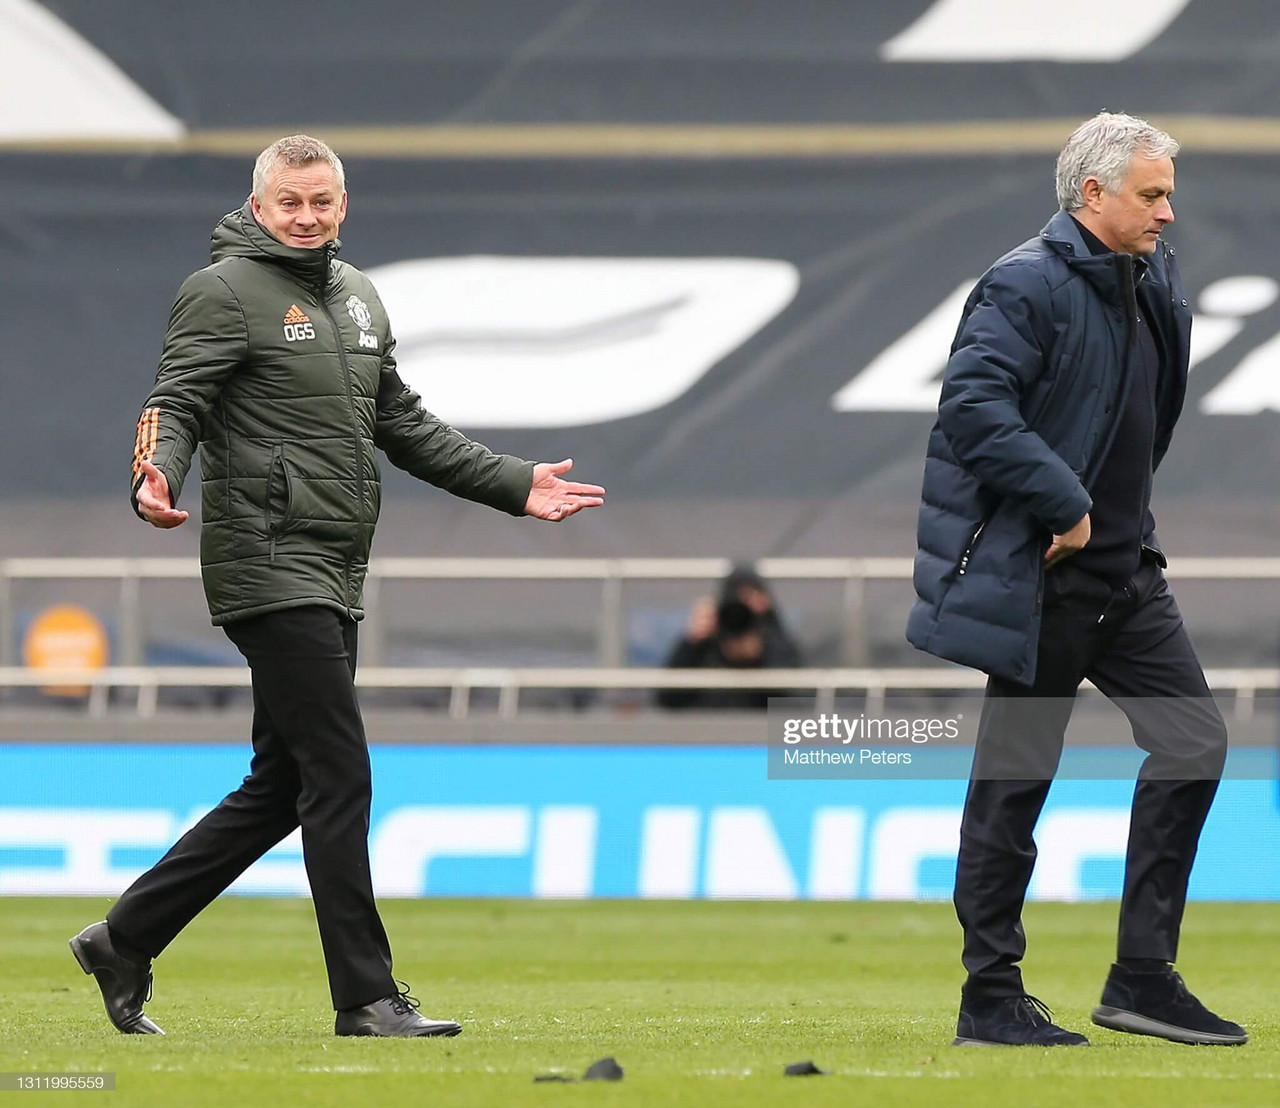 Manchester United: On the comeback trail